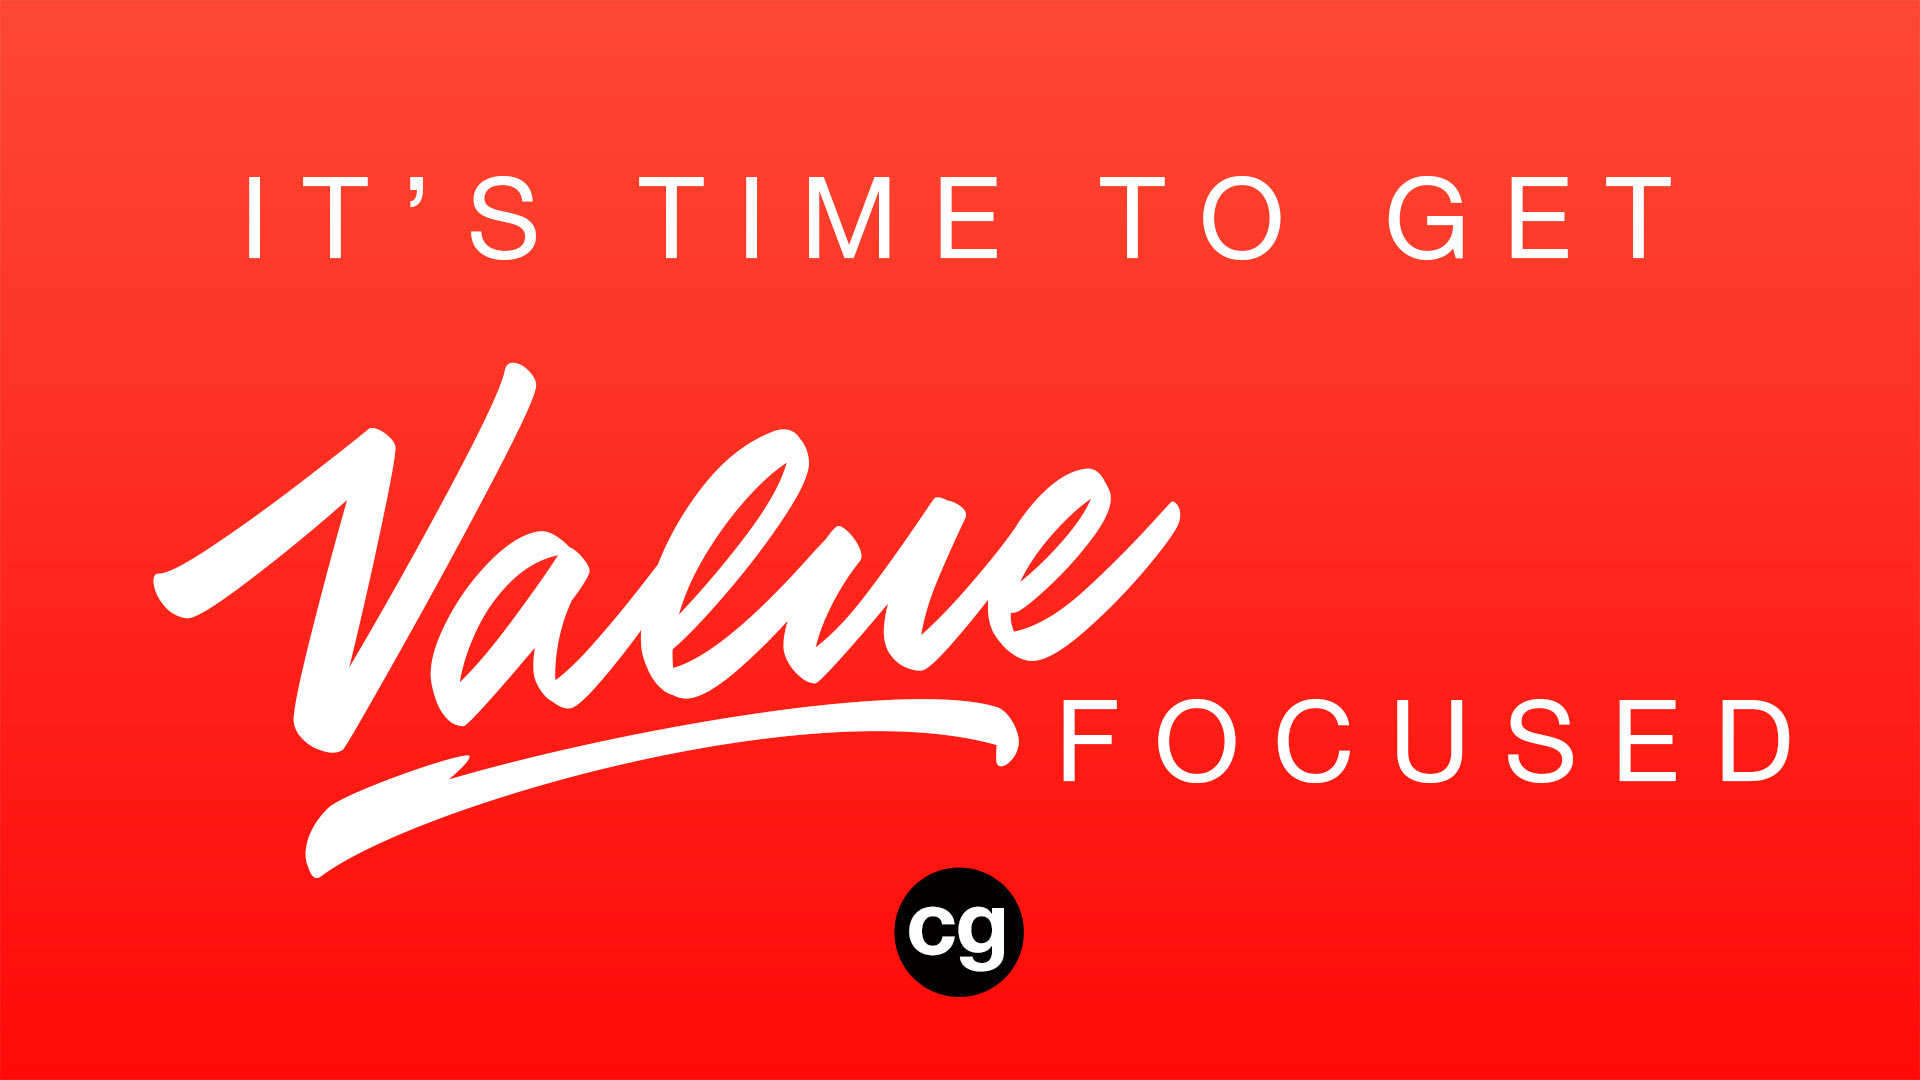 get value focused coaching brand consulting